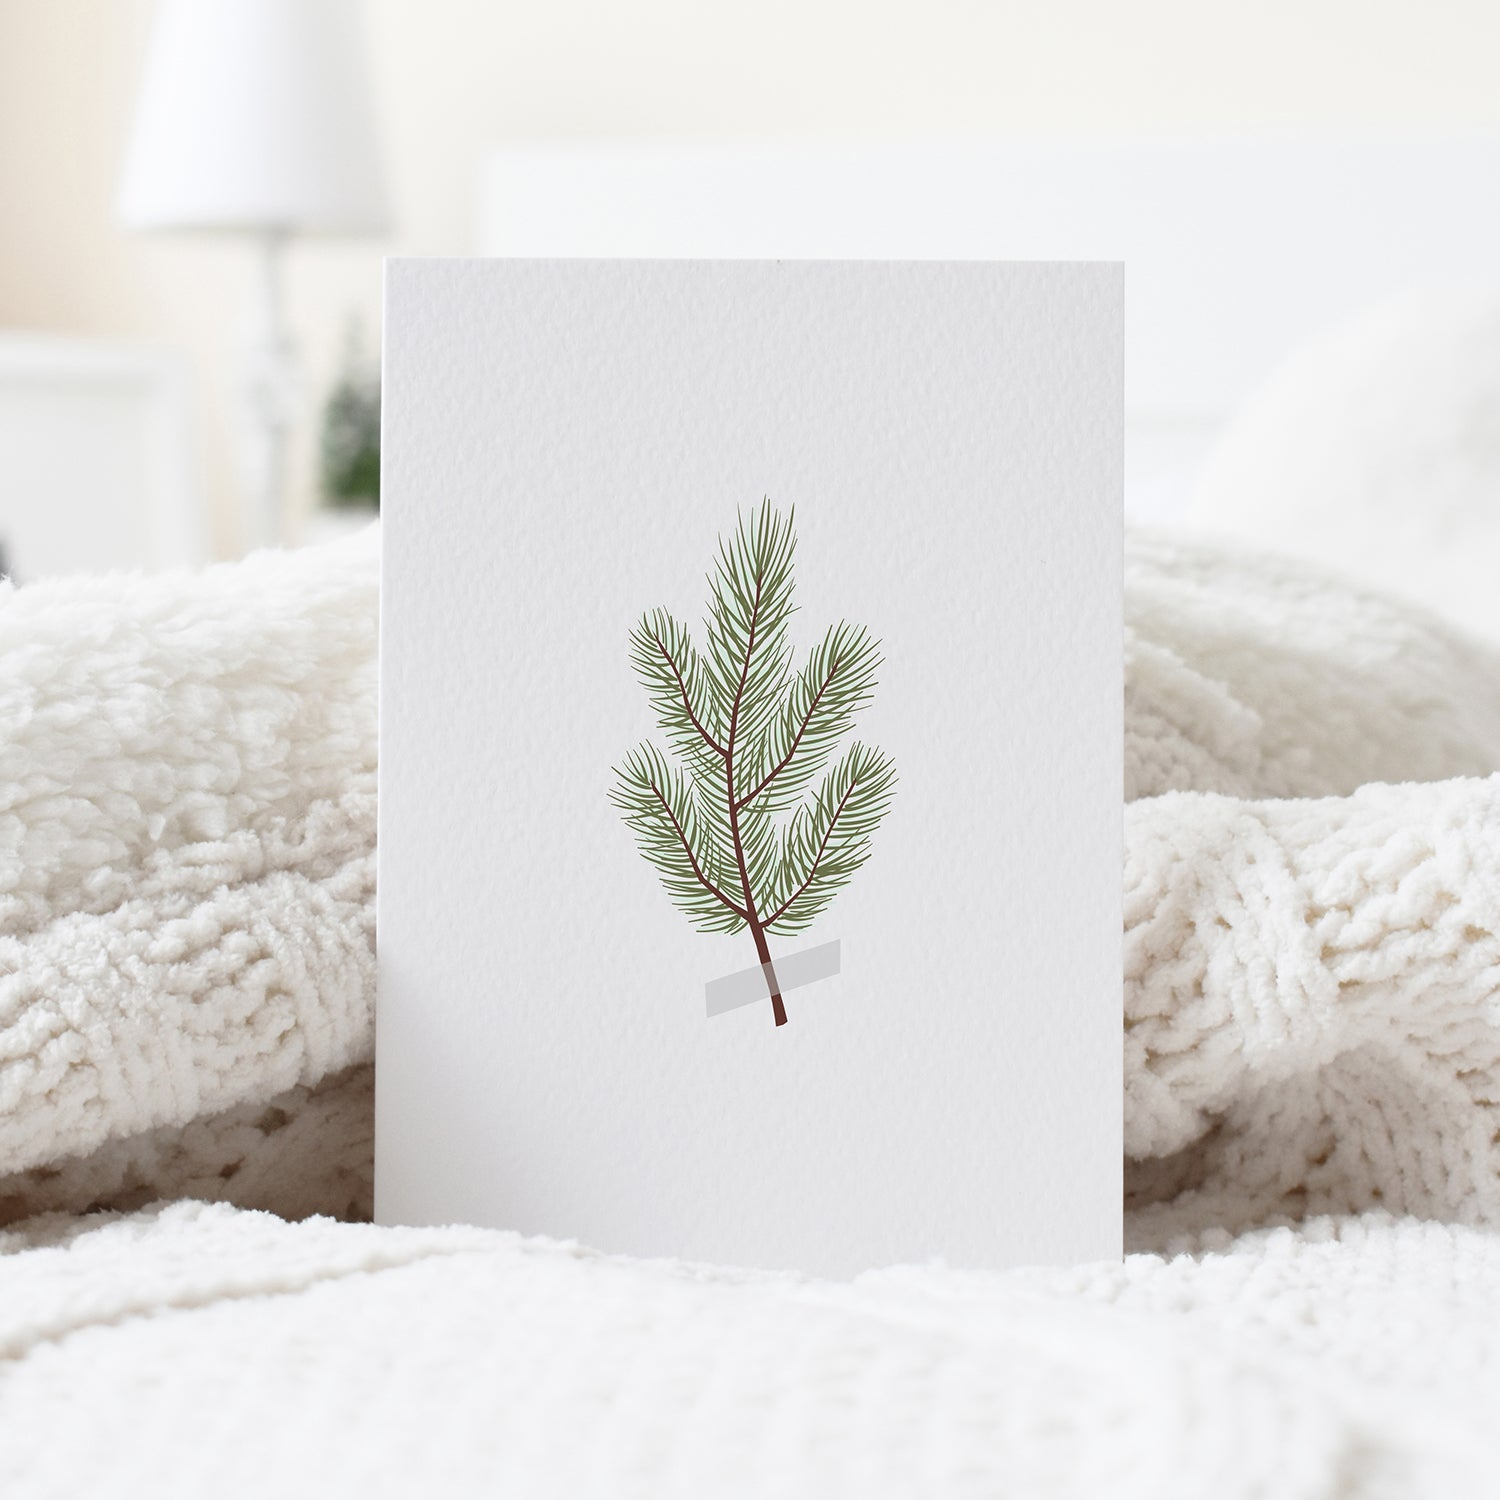 pine branch minimalist Christmas card elemente design cozy home greeting card